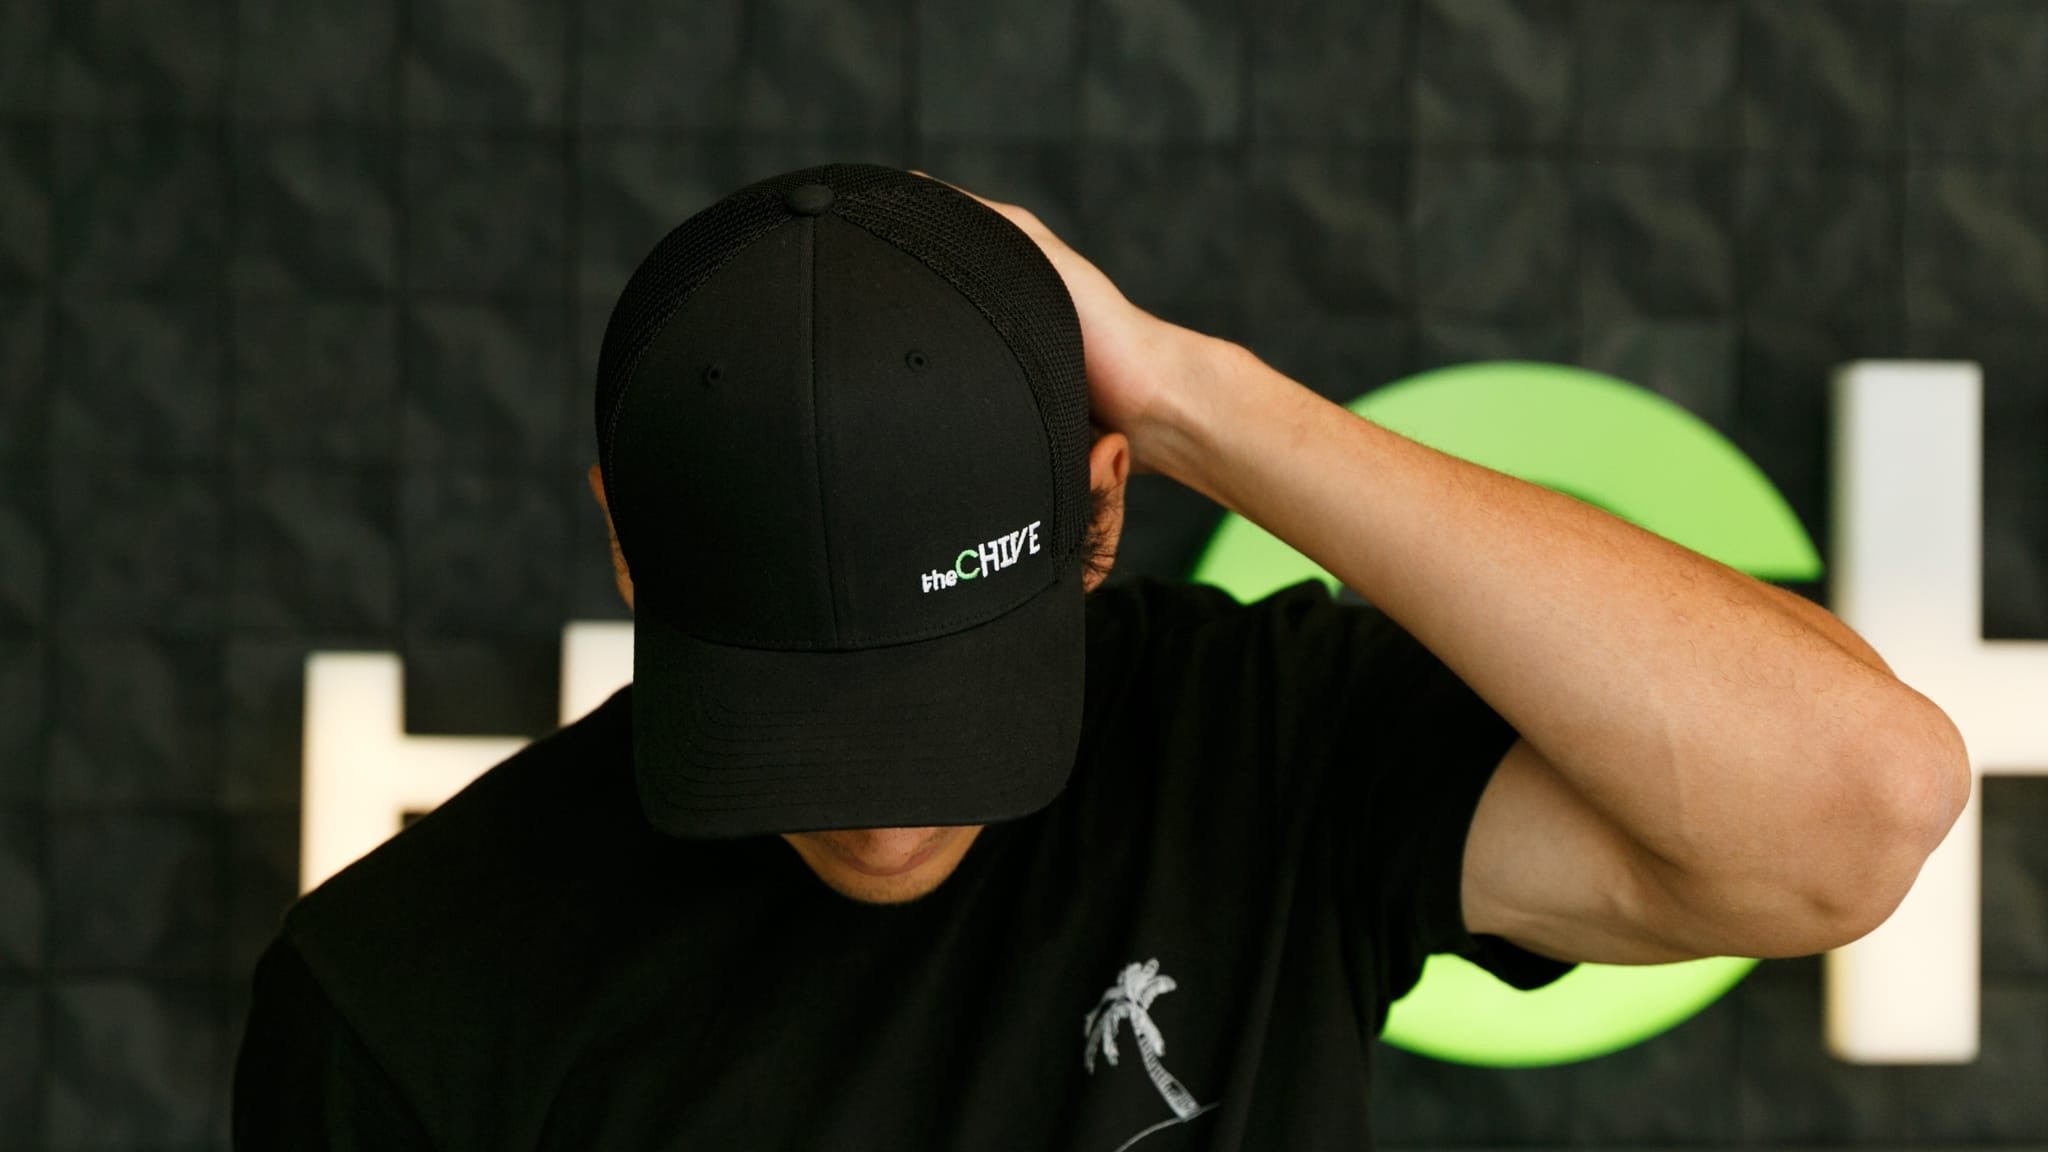 9b57bd41476 Vincent theCHIVE Logo Flexfit Hat. Double tap to zoom